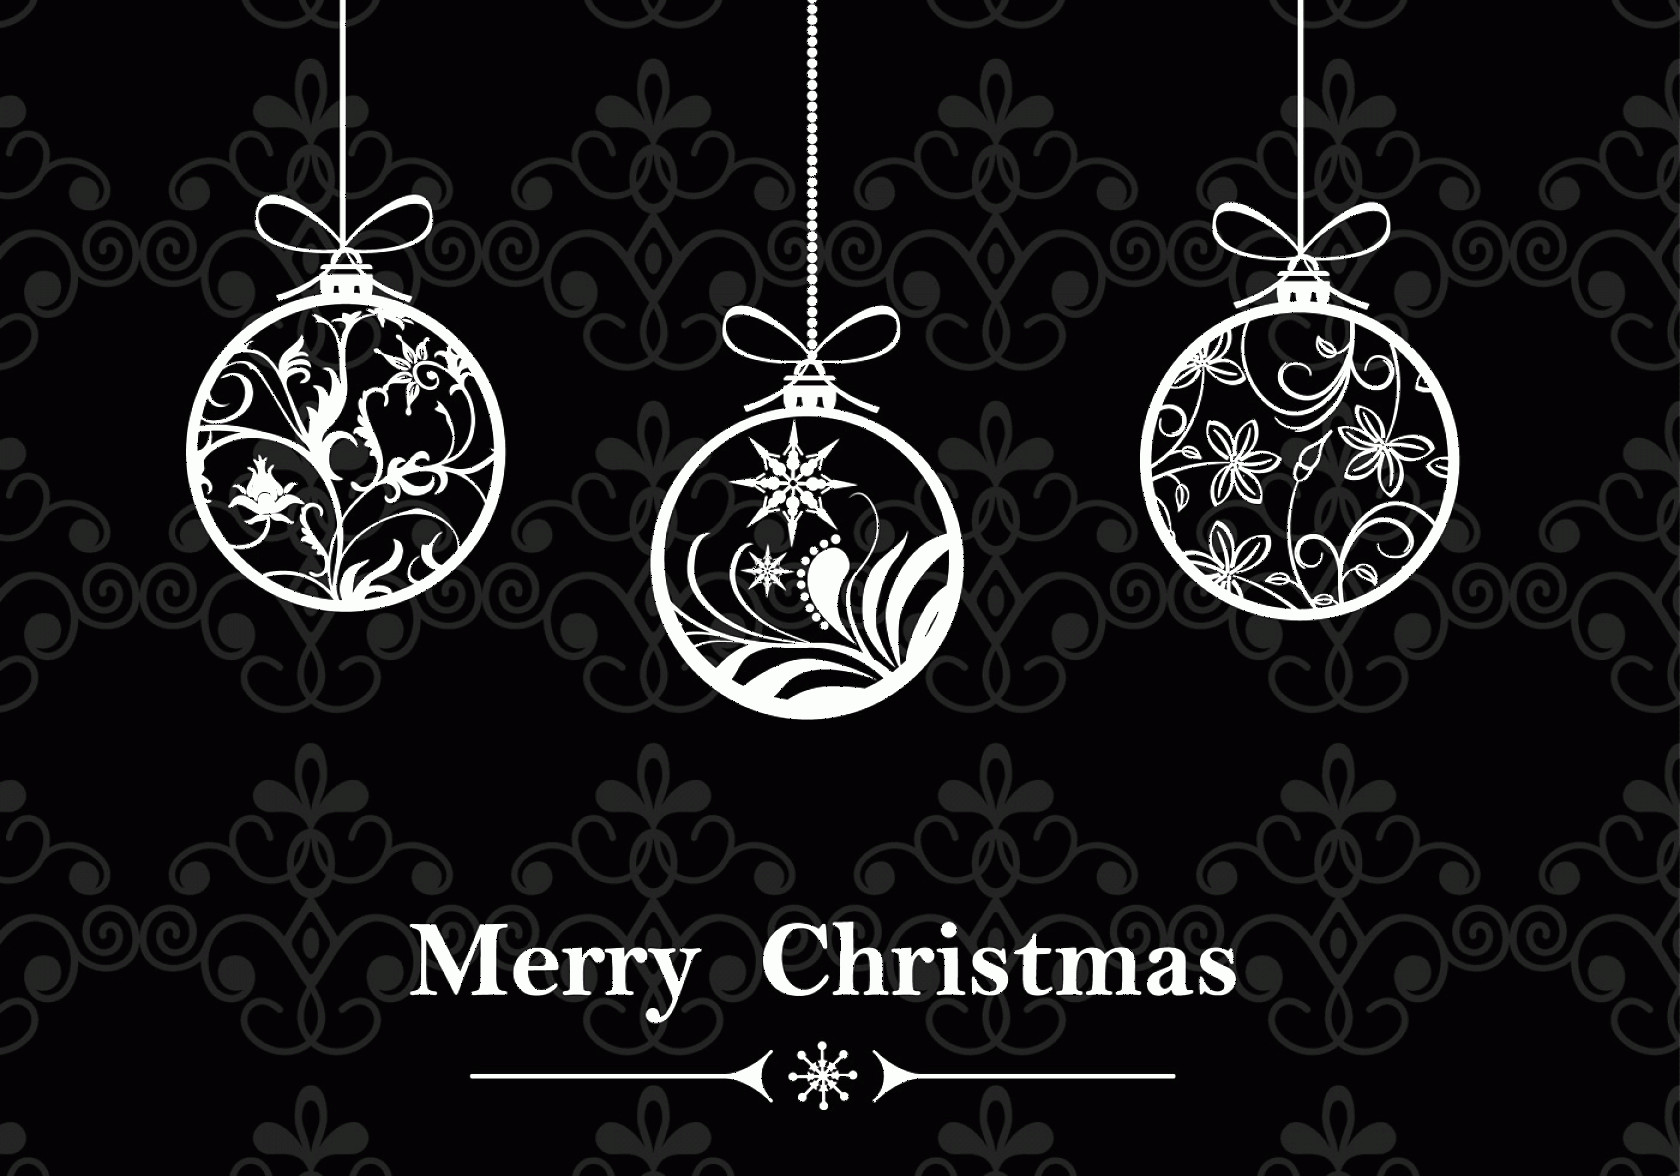 Black And White Christmas Ornament Vector Art: Black White Christmas Ornament Wallpaper Vector